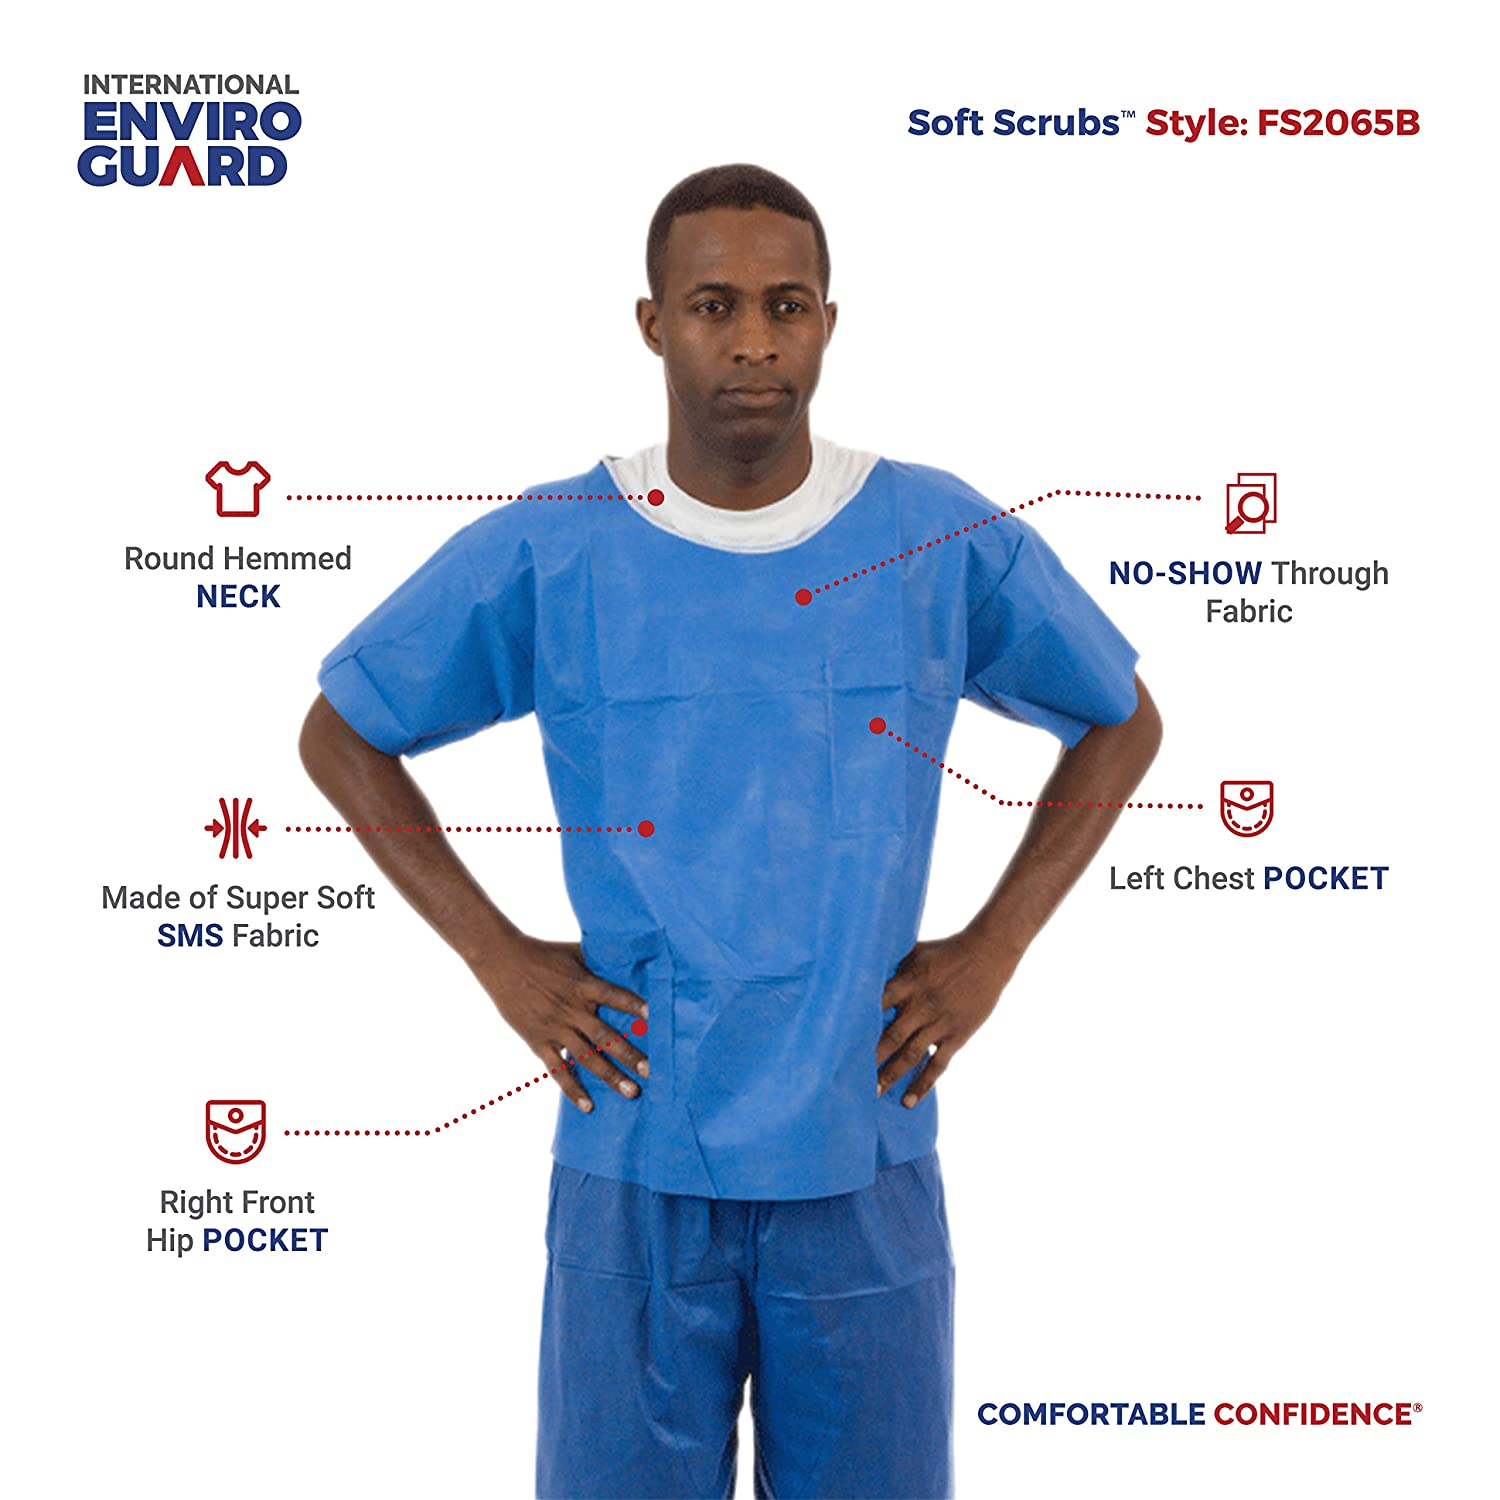 707a3310a64 Amazon.com: International Enviroguard Soft Scrubs   Protective Disposable  Scrub Shirts & Pants for Men and Women   Blue, Pack of 50 (2XL, Pants):  Home ...